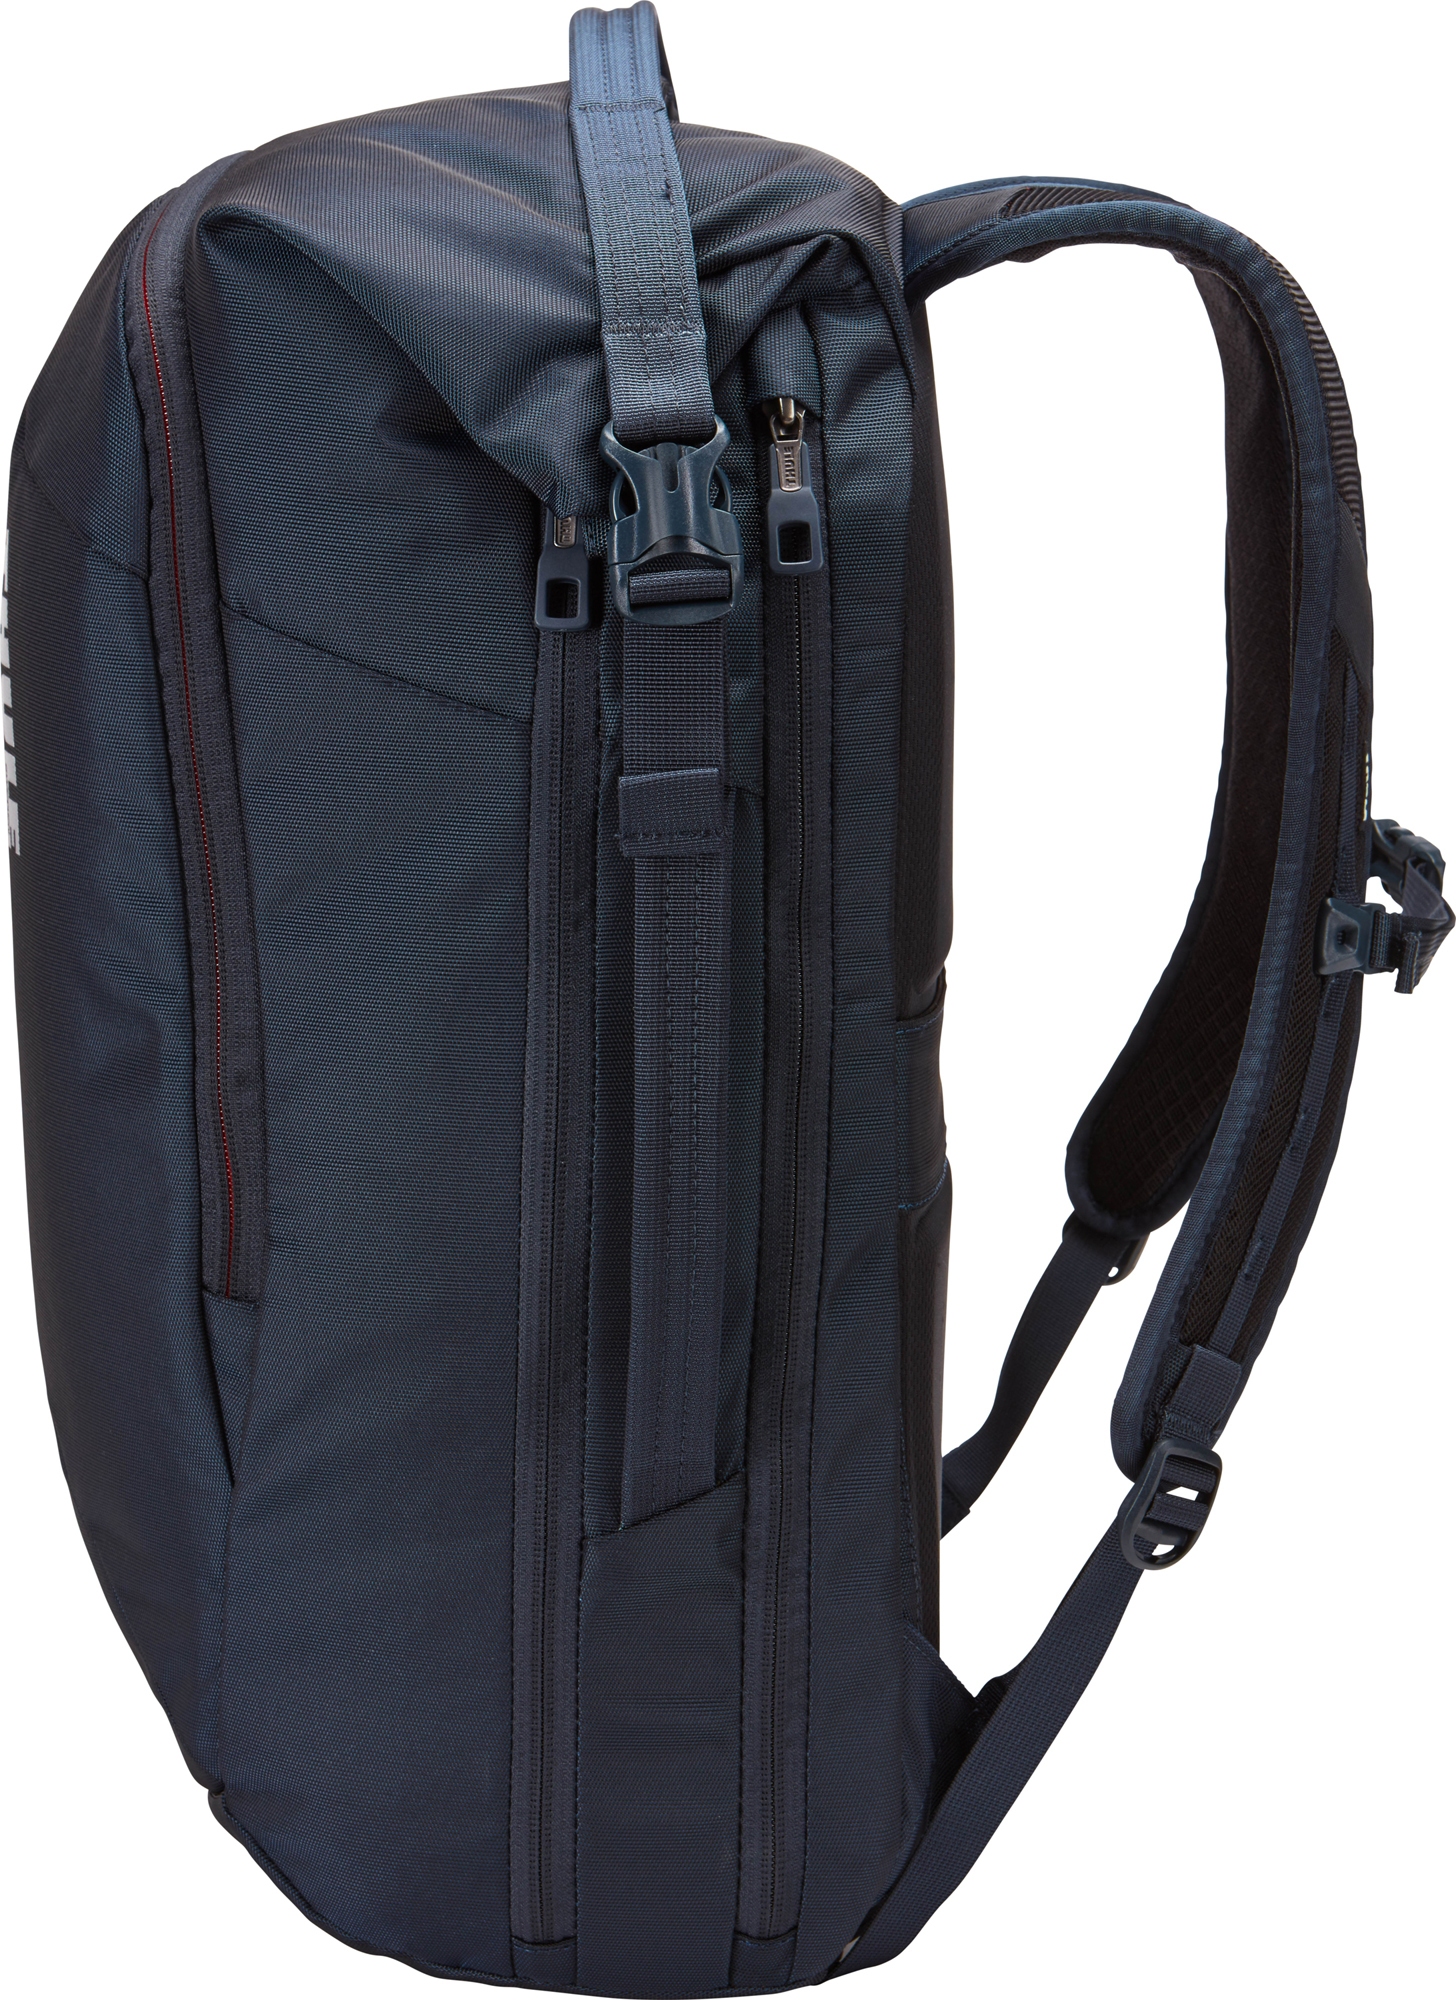 Thule_Subterra_Backpack_34L_Mineral_Side_3203441.jpg